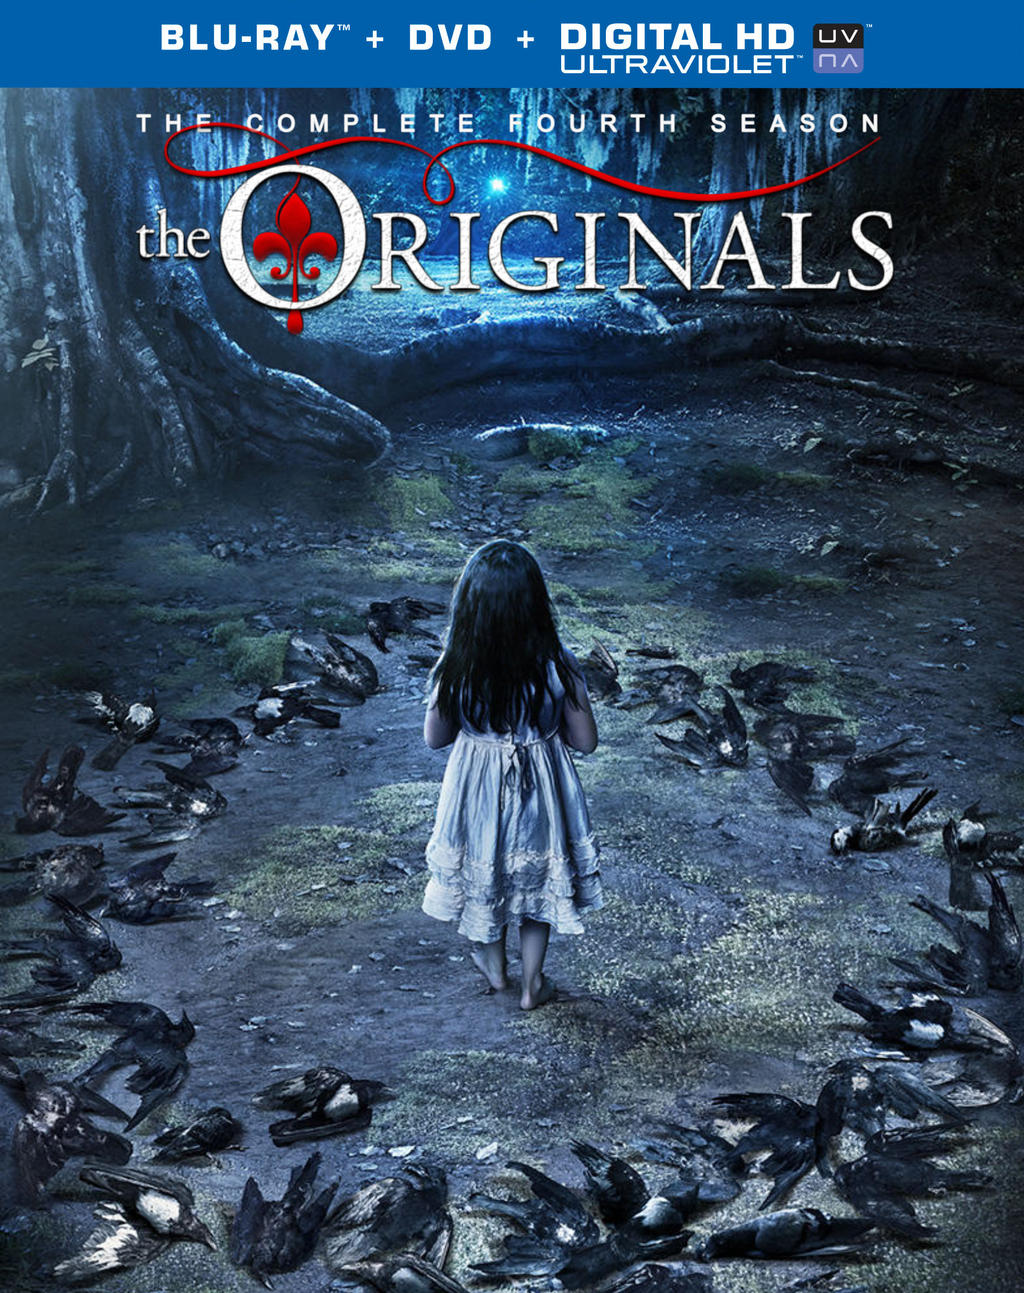 https://img00.deviantart.net/233d/i/2017/058/2/f/the_originals__season_4__bluray_cover__by_macschaer-db0lxnq.jpg